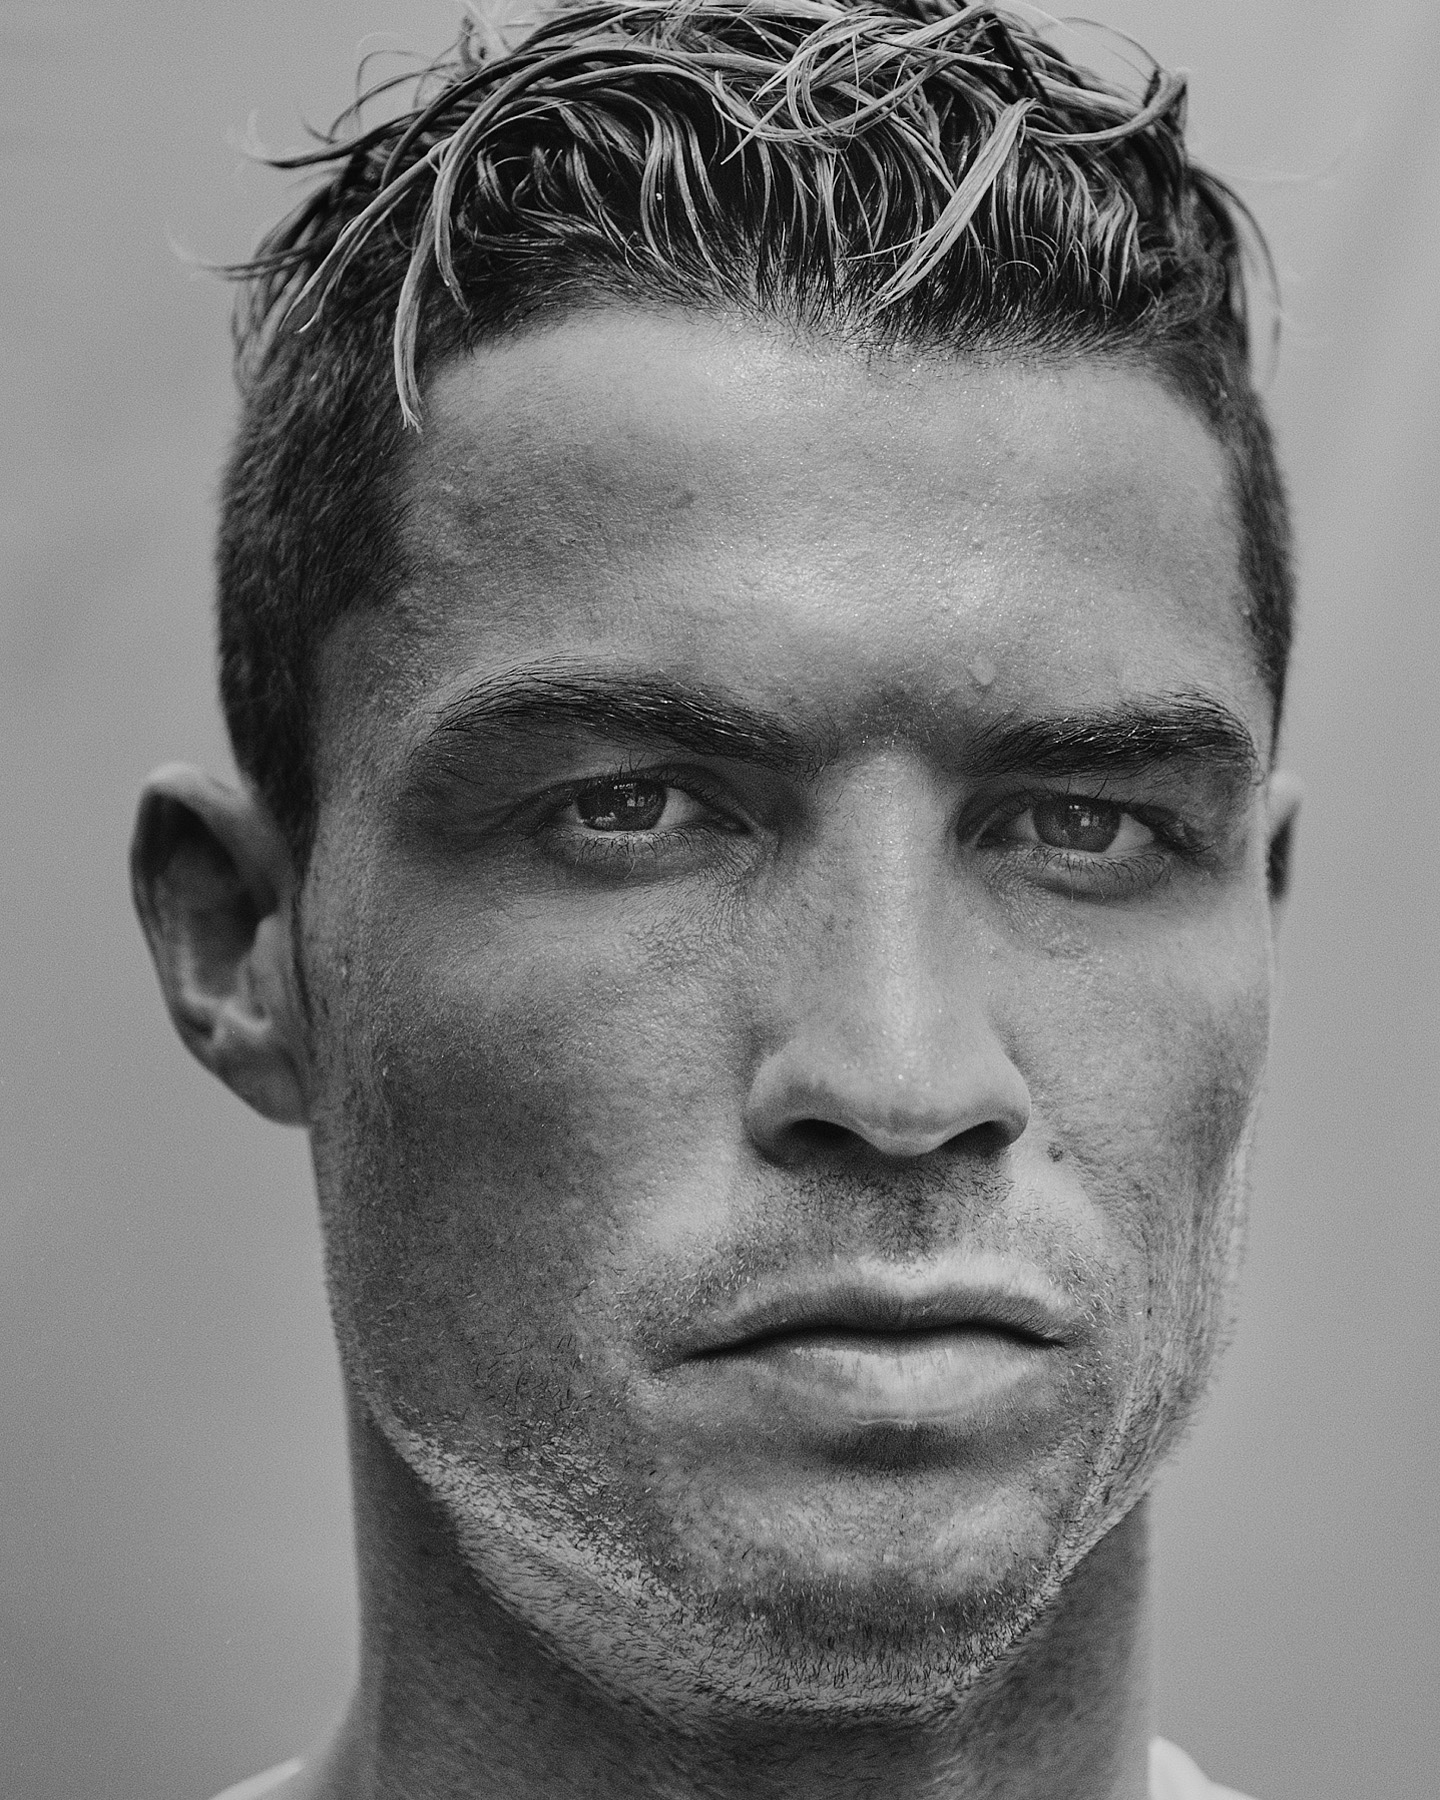 FaHo17_CR7_Madrid_CHRISTOPHER_ANDERSON_GFB_01034